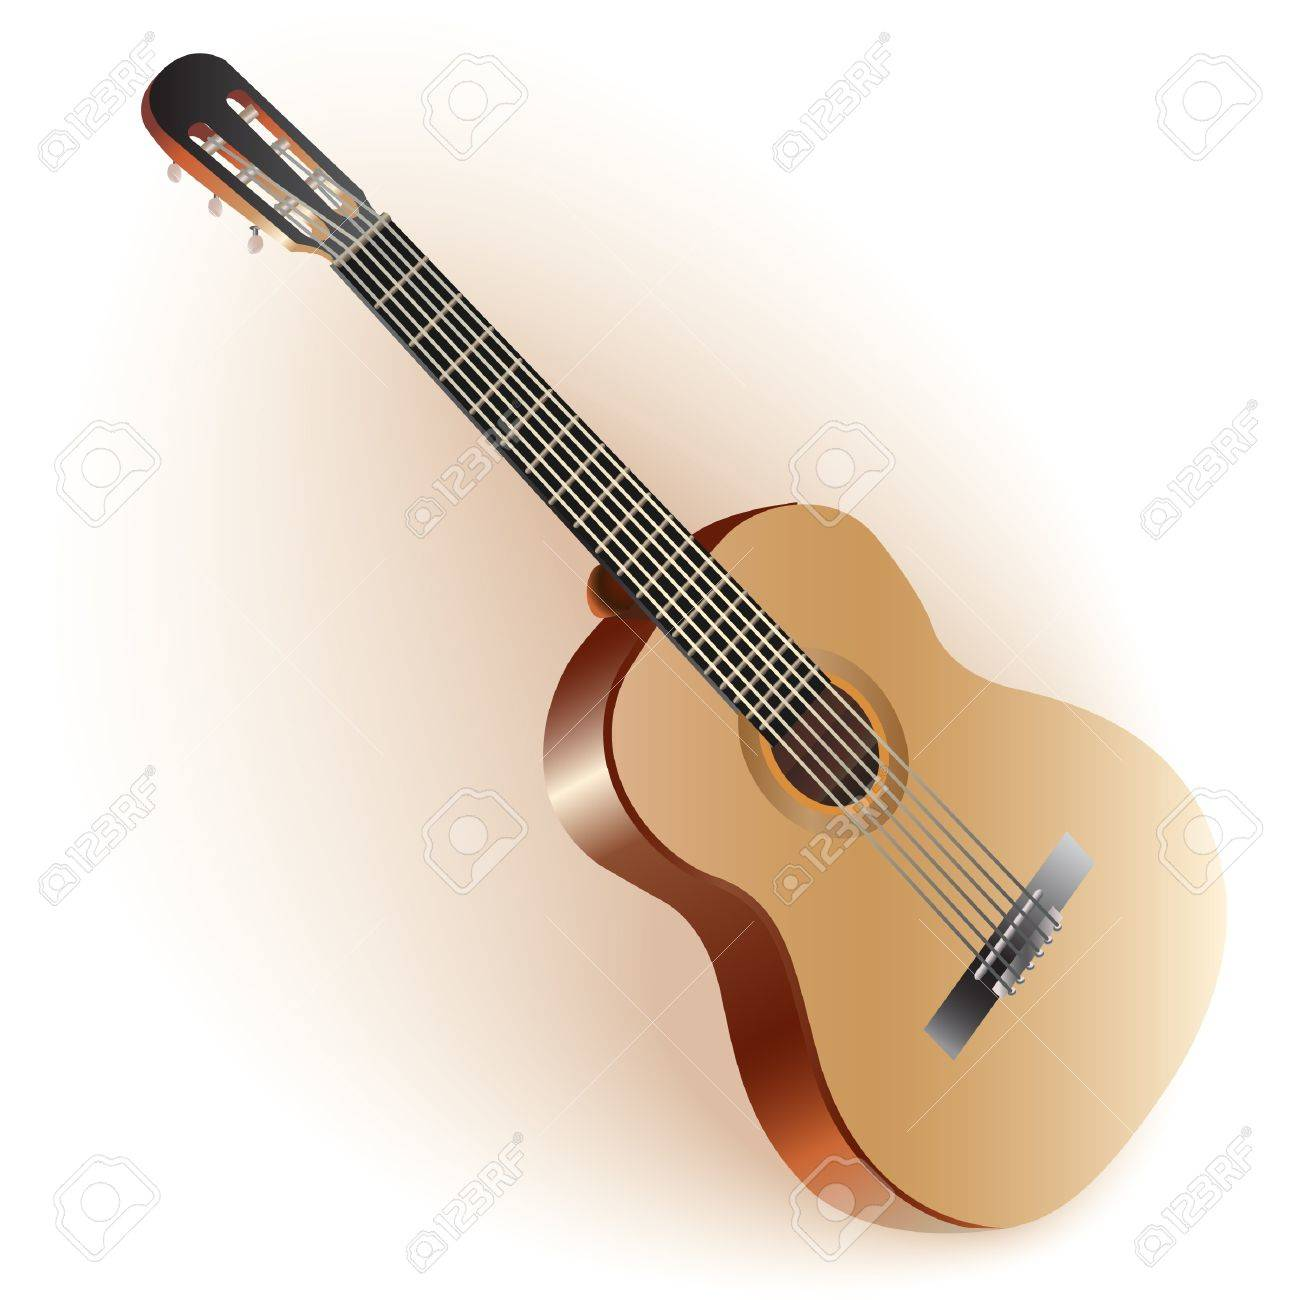 Musical series - Classical Spanish guitar, isolated on white background Stock Vector - 19127479